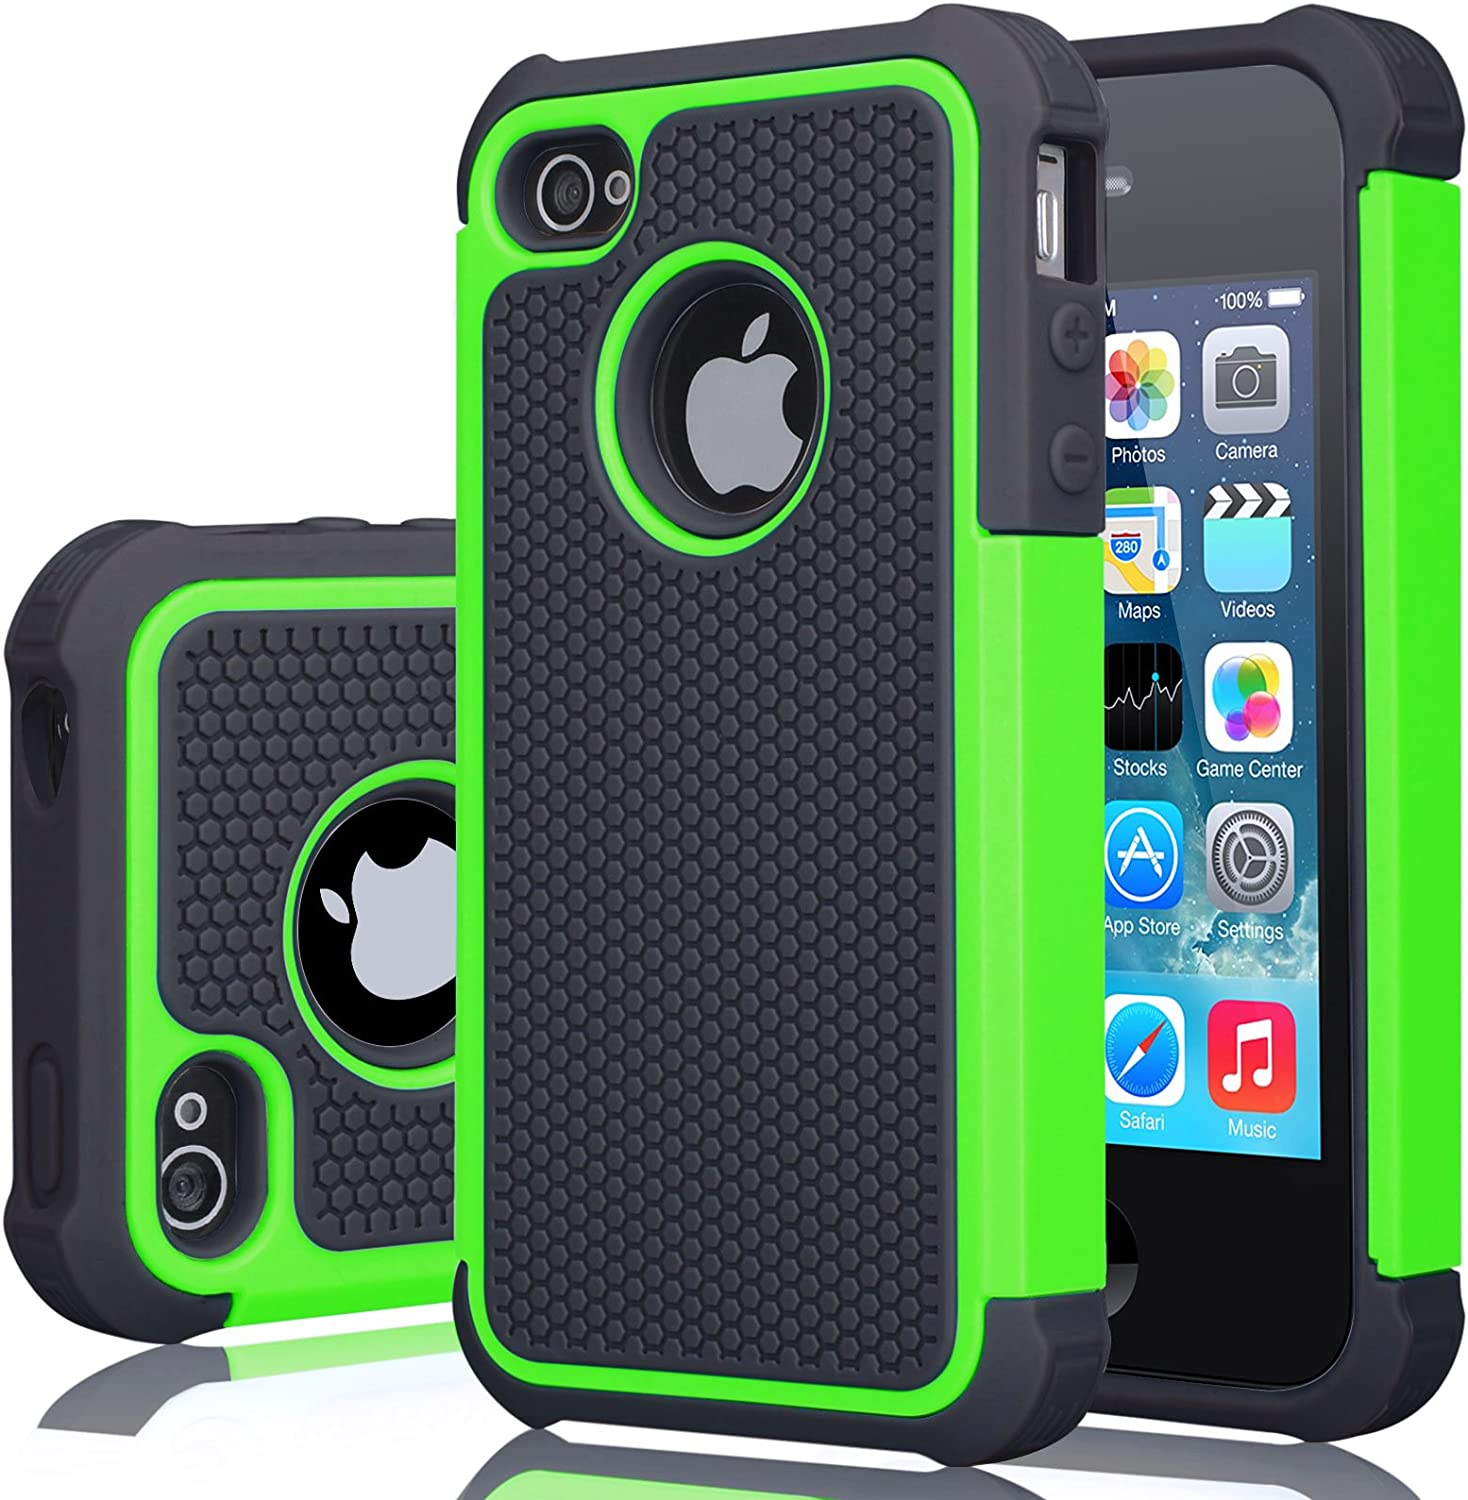 iPhone 4S Case, iPhone 4 Cover, Jeylly Shock Absorbing Hard Plastic Outer + Rubber Silicone Inner Scratch Defender Bumper Rugged Hard Case Cover for Apple iPhone 4/4S - Green